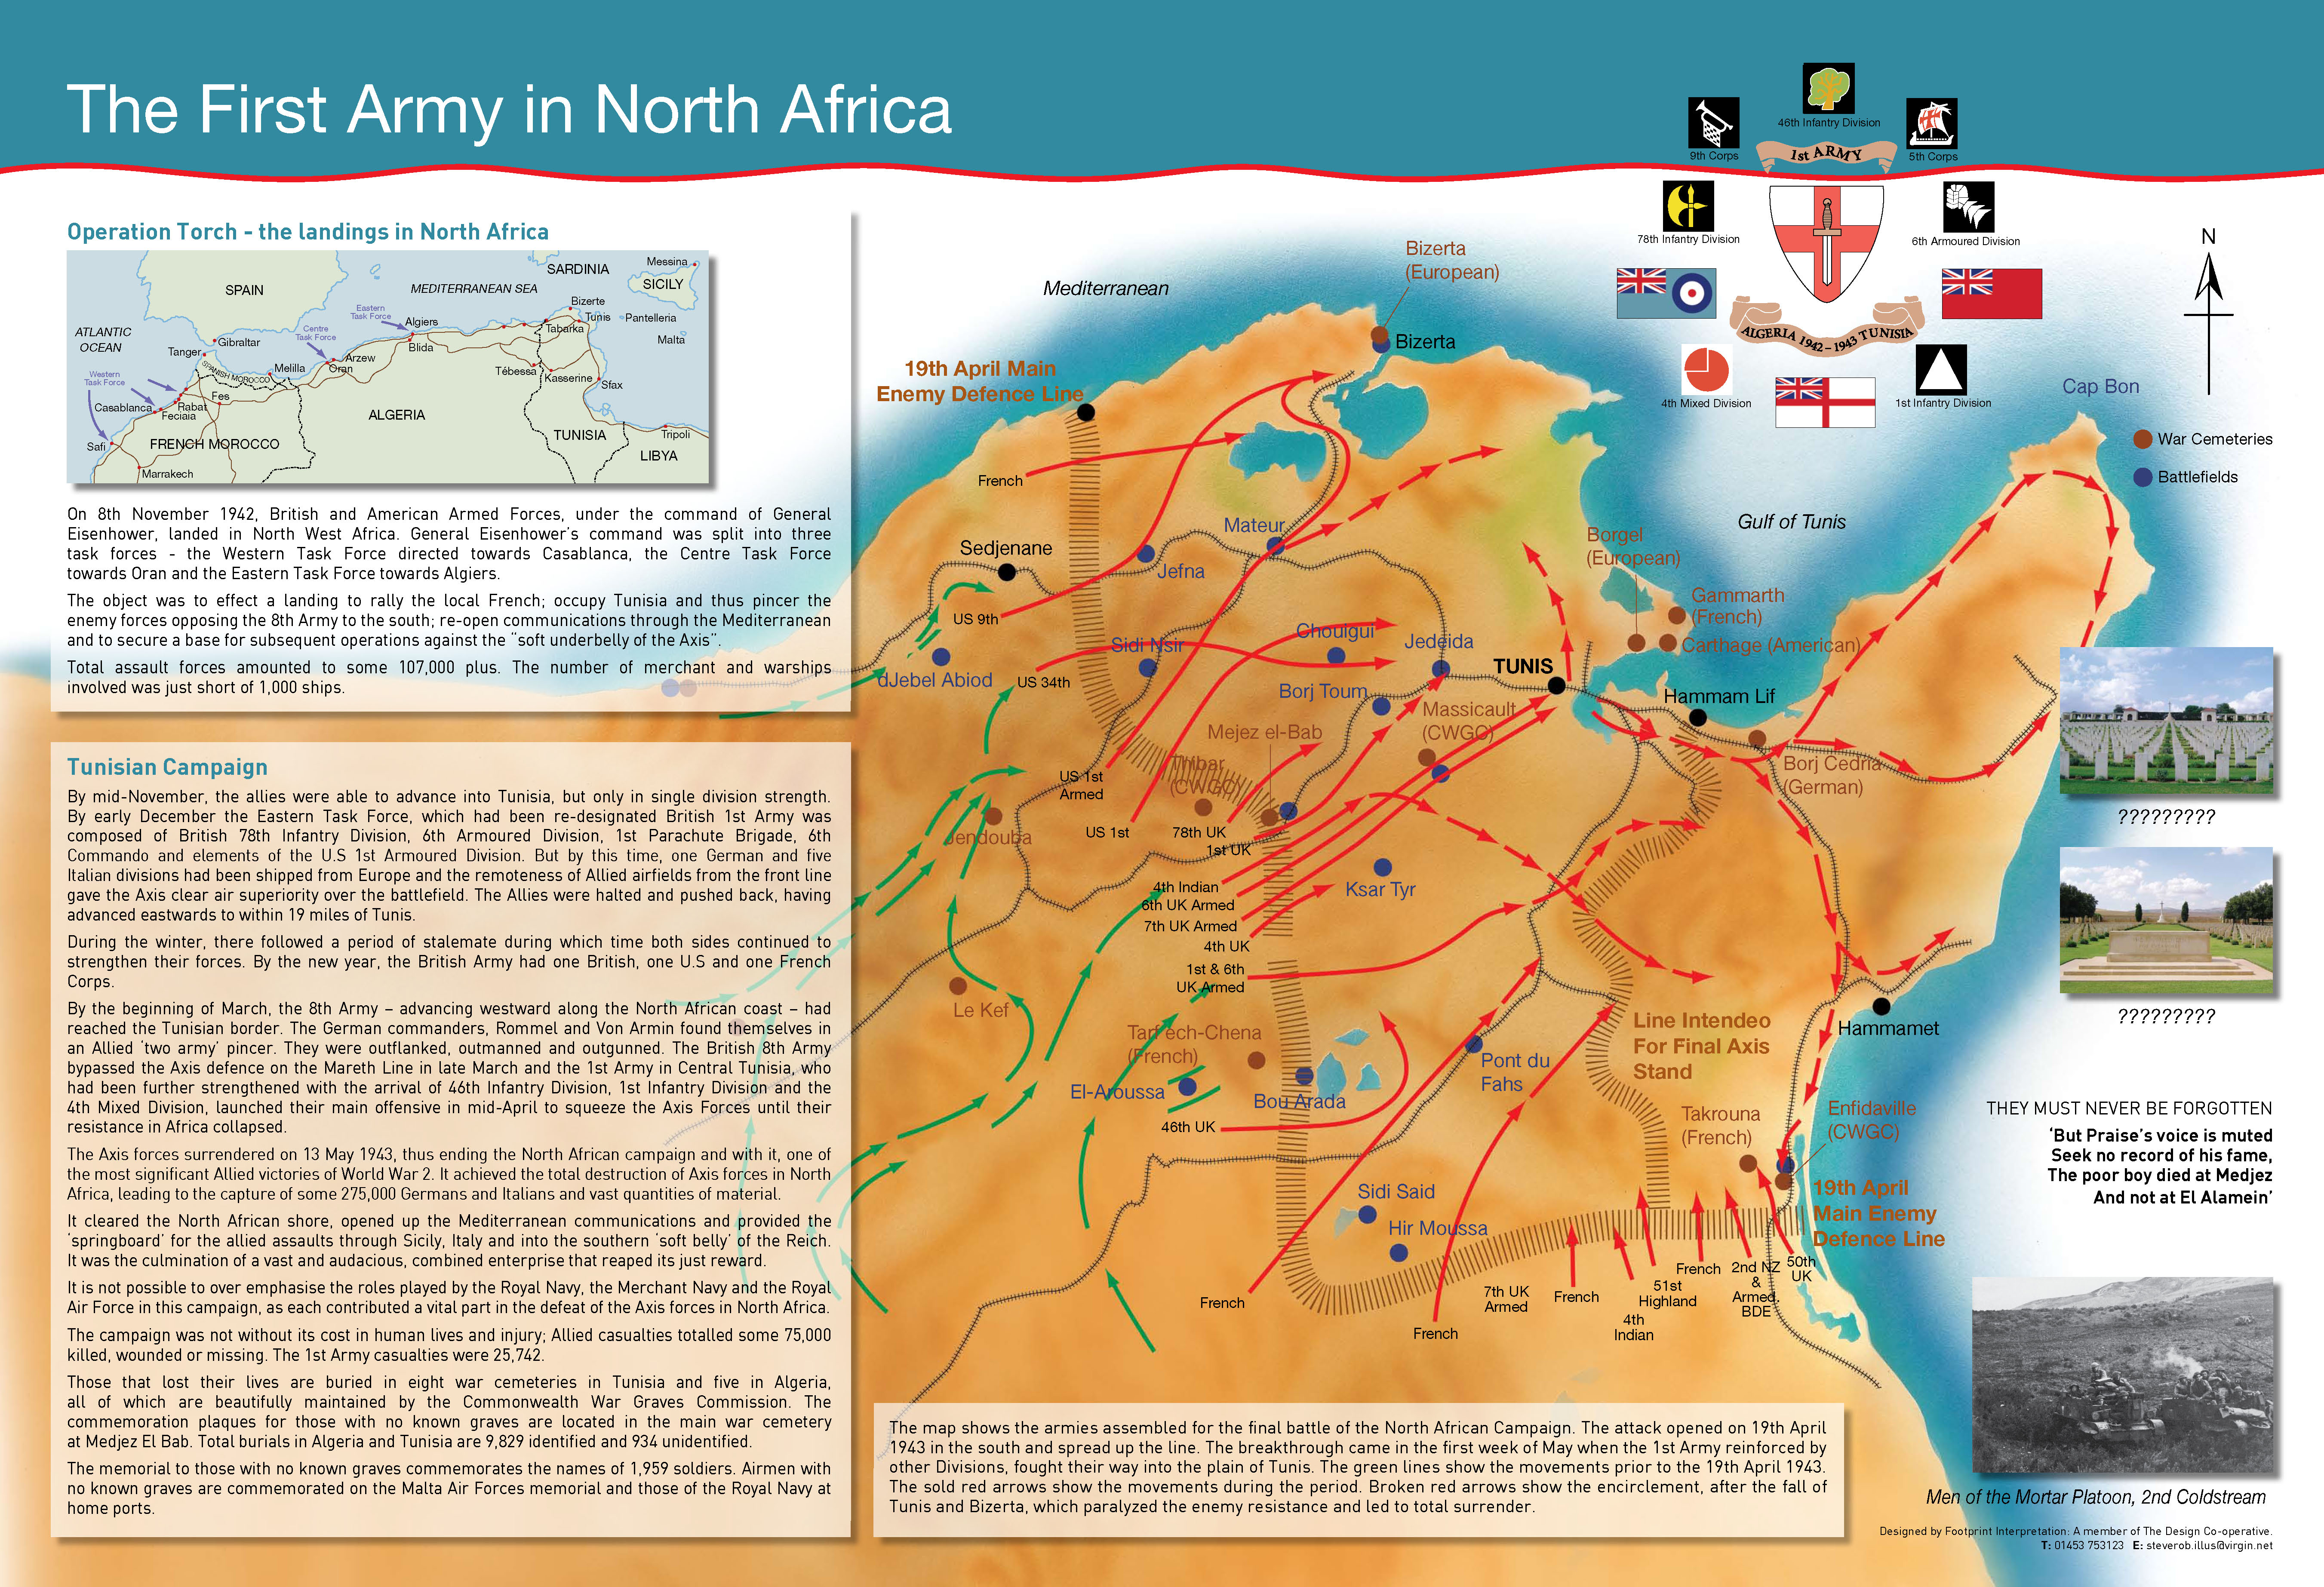 2 page essay on north african campaign Extensive collection of college example essays on all topics and document types such as argumentative, persuasive, narrative, scholarship, and more.